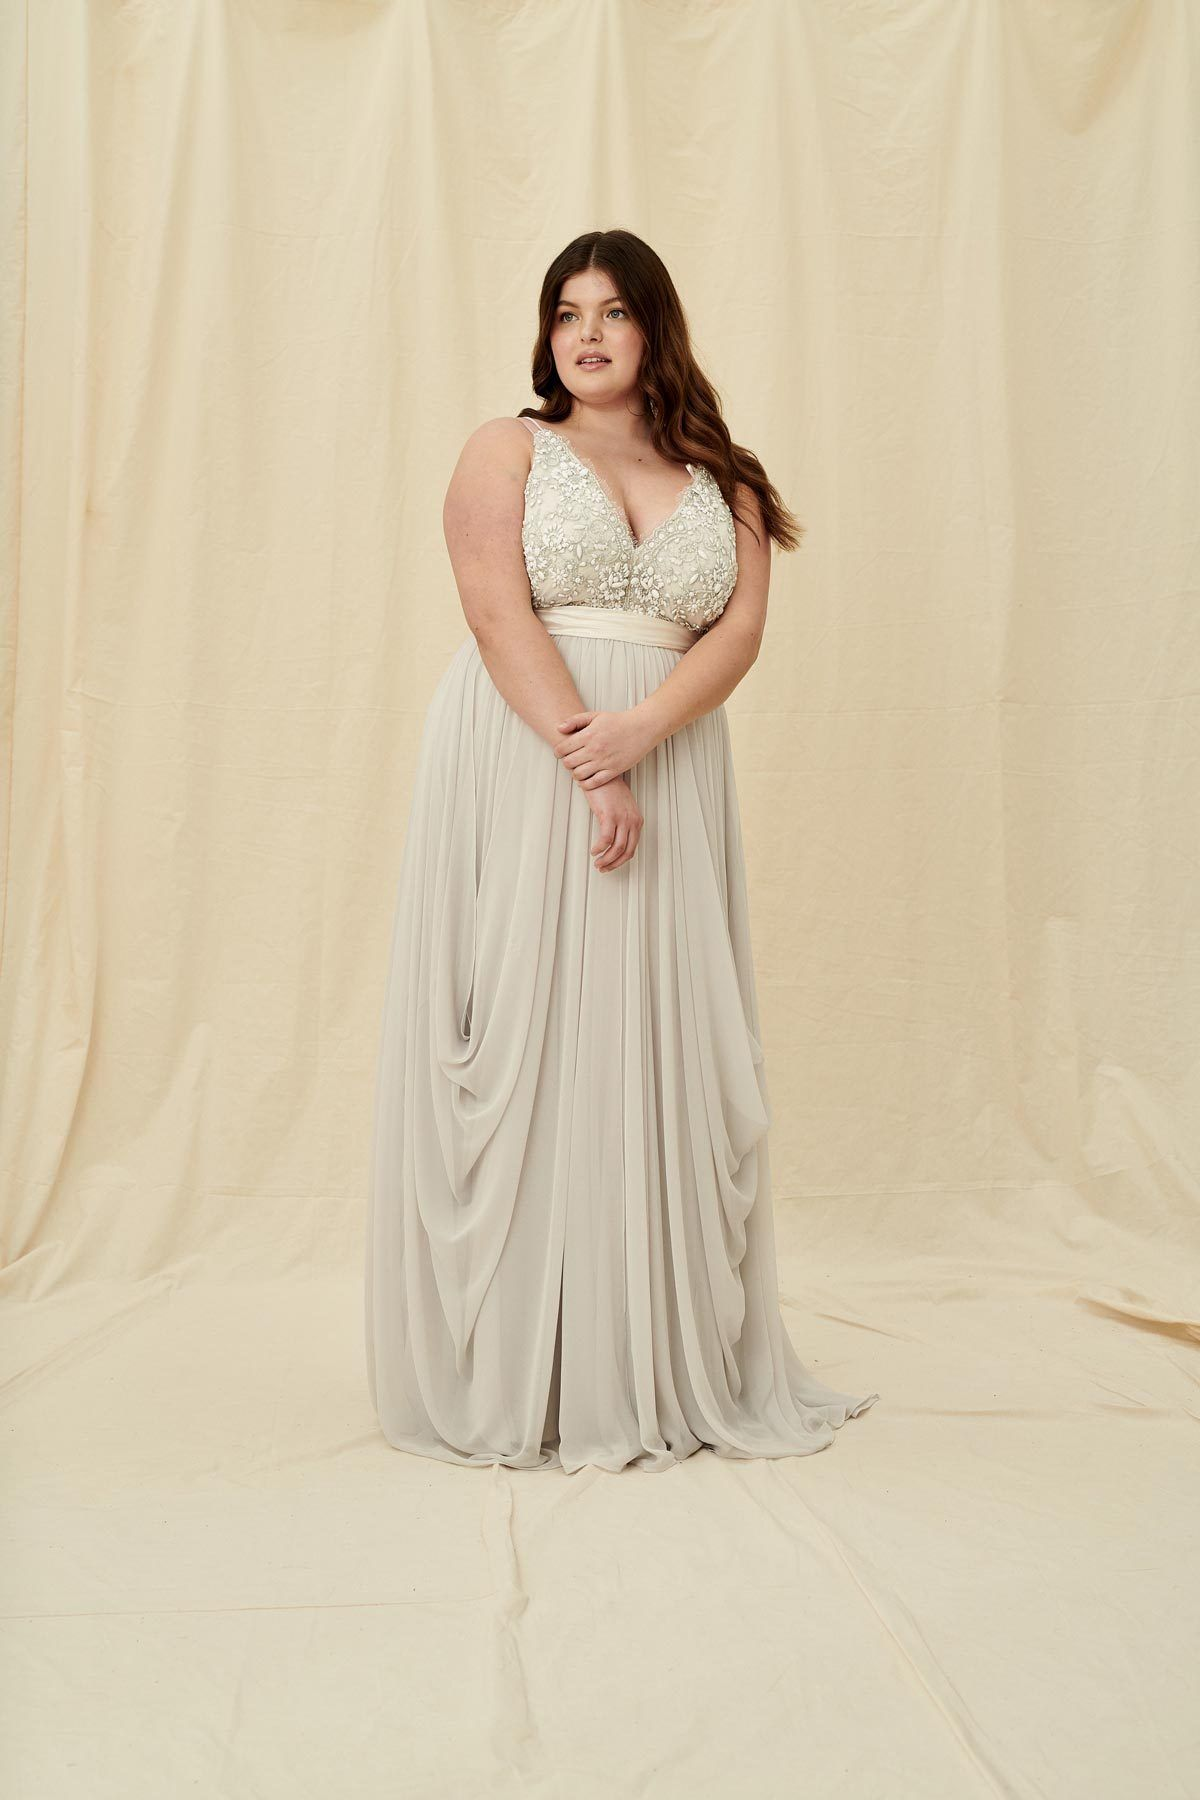 Truvelle Alexandra Curve A Modern Wedding Gown Deep V Plus Size Bridal Gown With Coloured Lace Beading Dresses Used Wedding Dresses Wedding Dress Shopping [ 1800 x 1200 Pixel ]